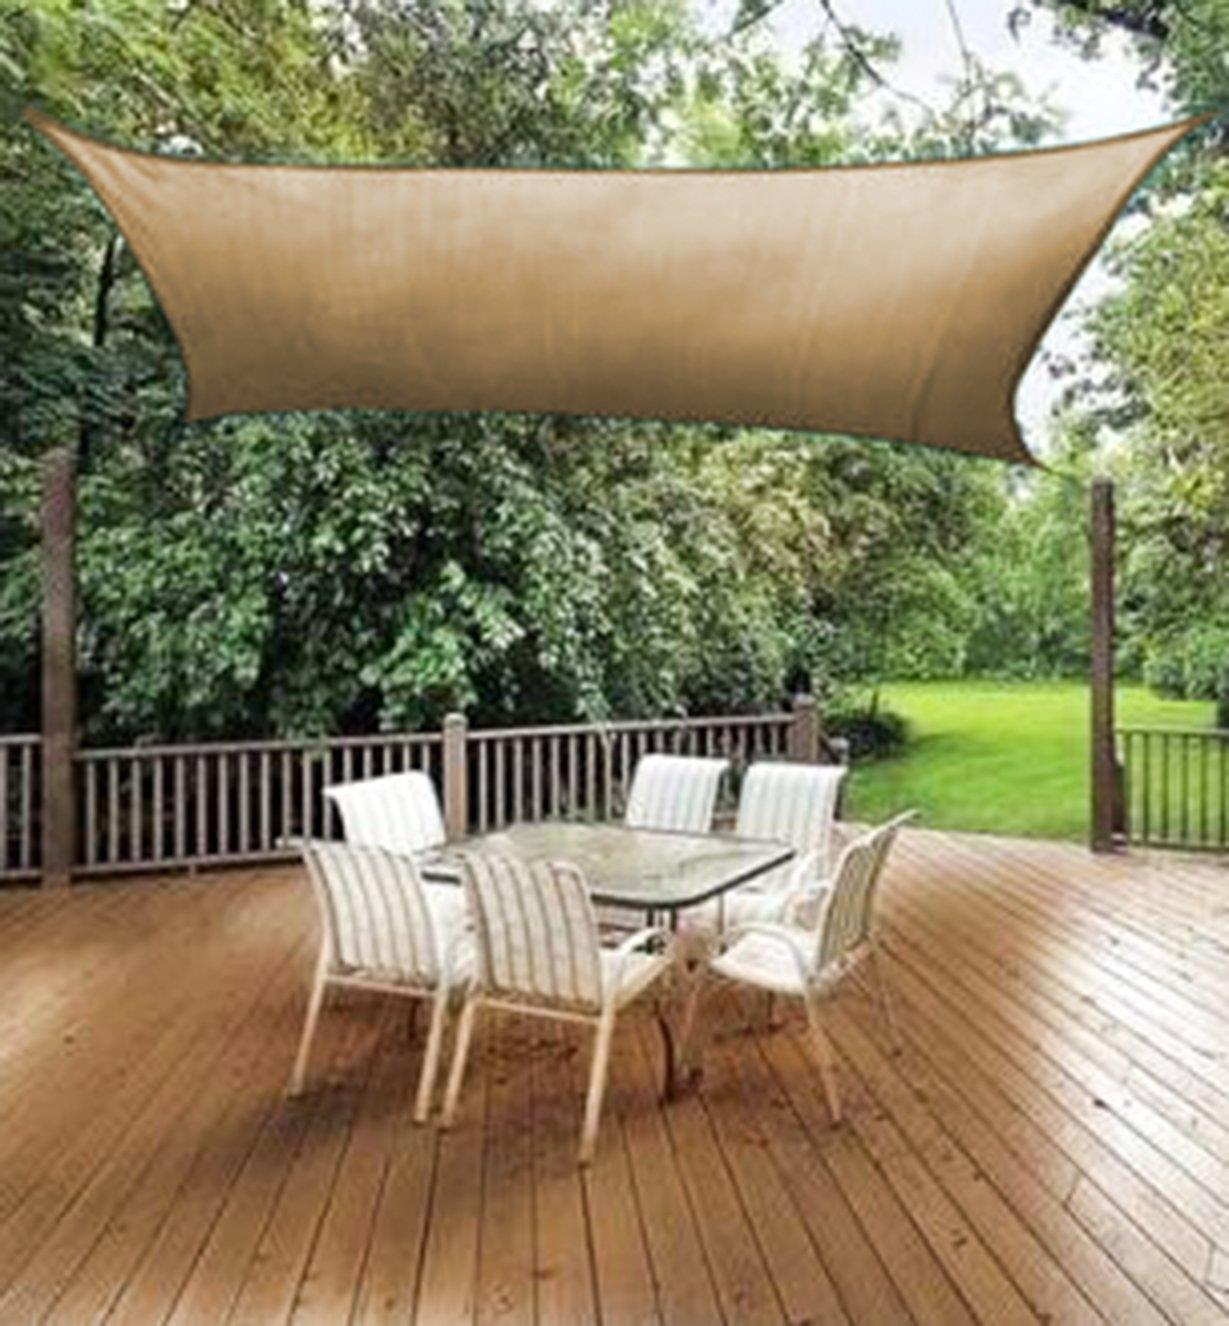 BL683 - Rectangle Shade Sail